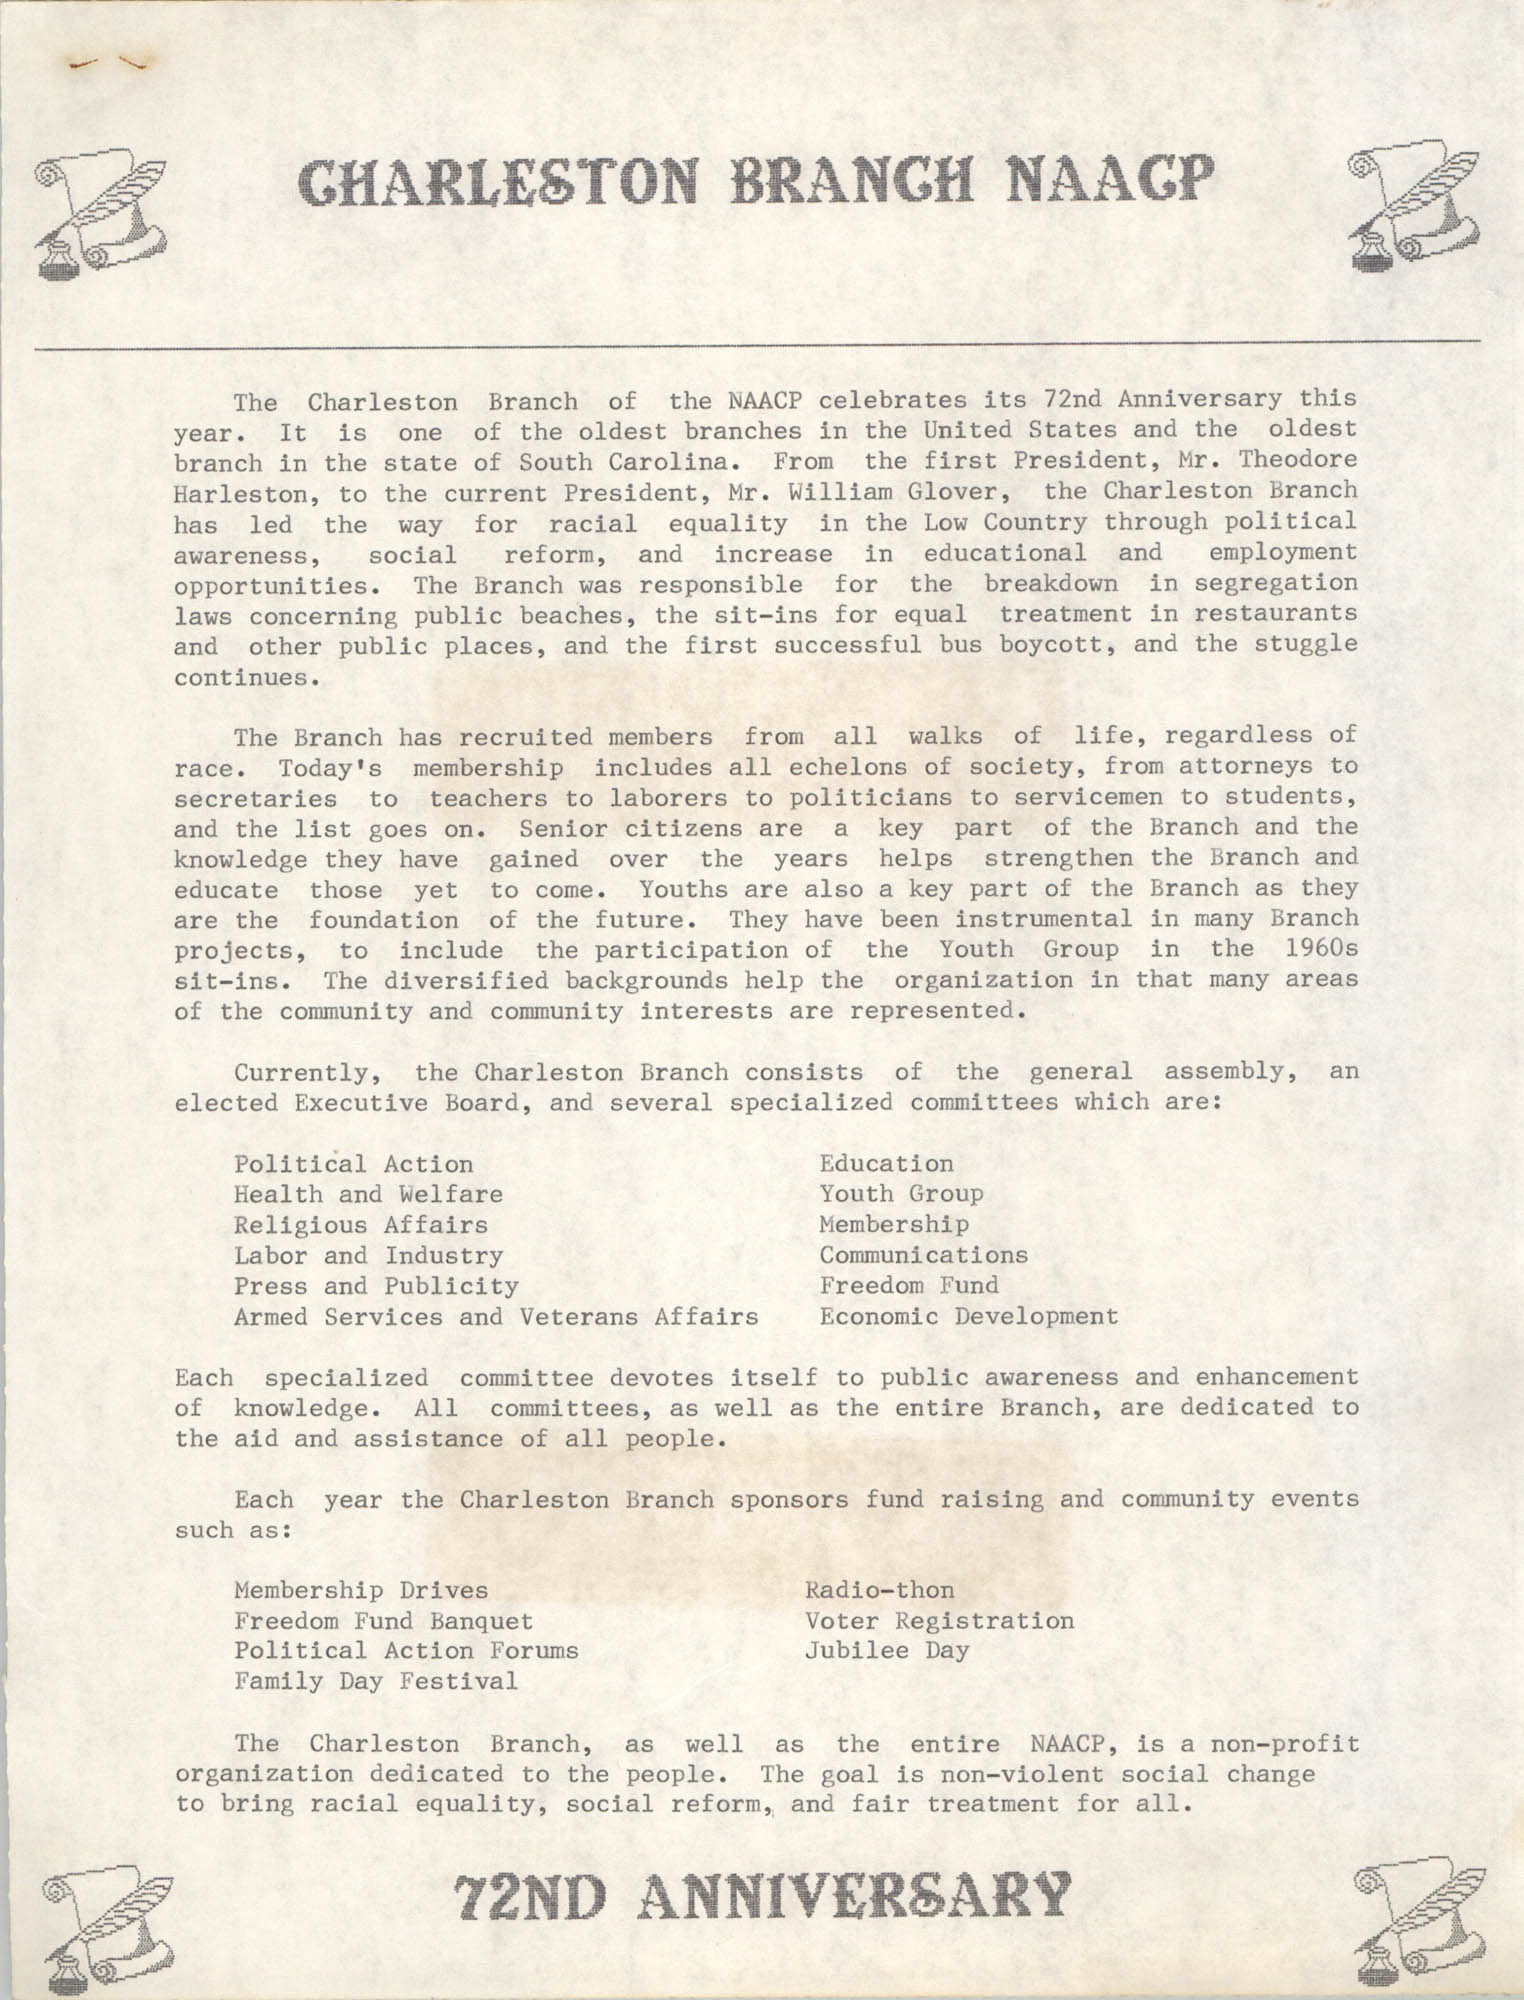 72nd Anniversary Flyer, National Association for the Advancement of Colored People